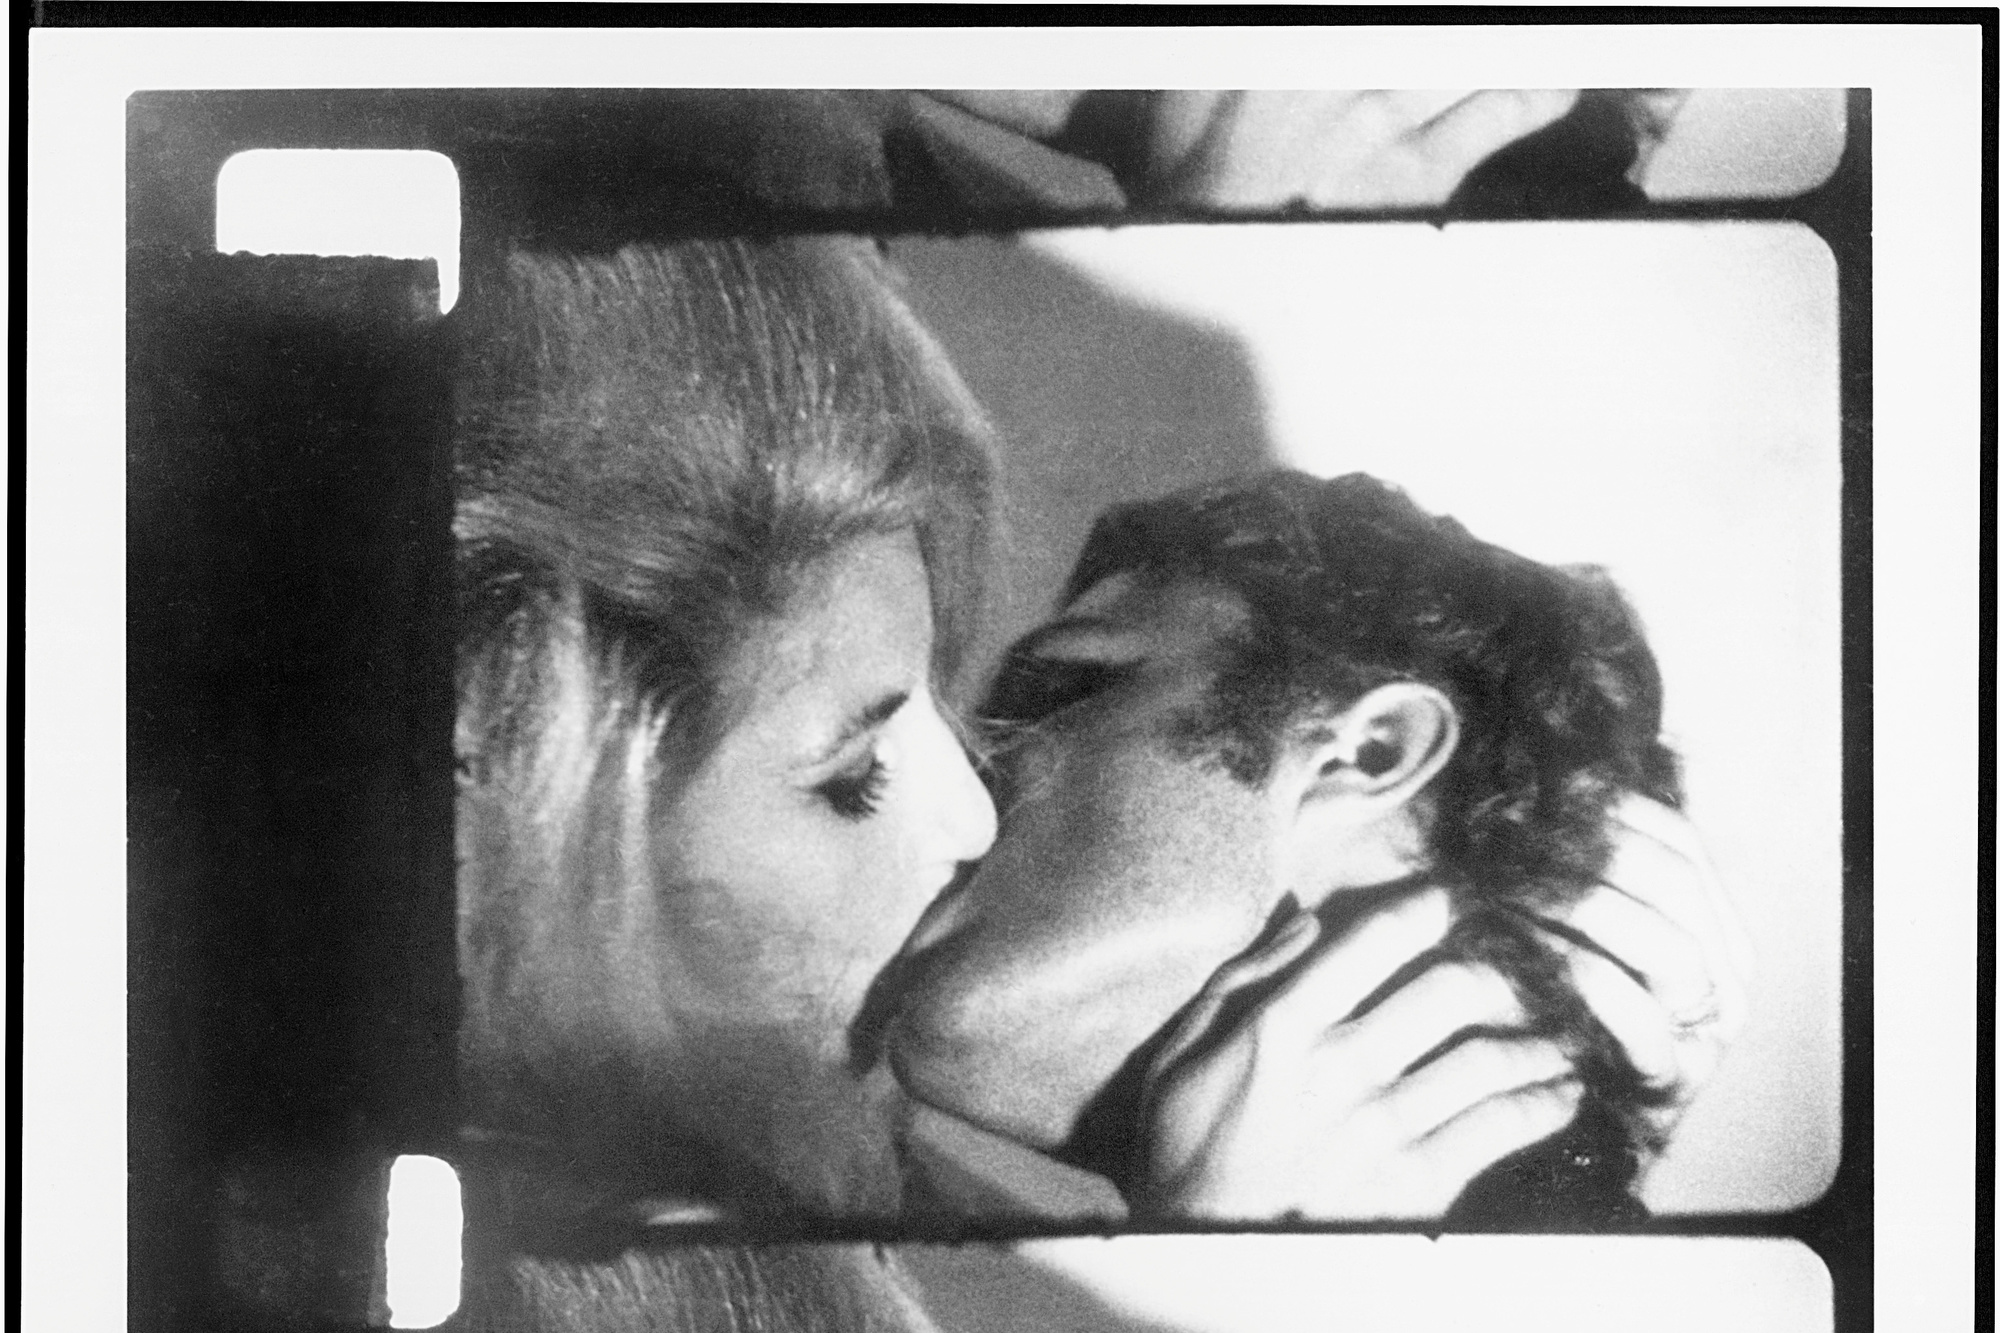 Andy Warhol. Kiss. 1964. 16mm film transferred to video (black and white, silent), 58 min. at 16 fps. The Museum of Modern Art, New York. Courtesy The Andy Warhol Museum, Pittsburgh, and The Andy Warhol Foundation for the Visual Arts, Inc. Digital media management by MPC New York Film scanning by Technicolor-PostWorks New York. © 2019 Andy Warhol Foundation for the Visual Arts/Artists Rights Society (ARS), New York